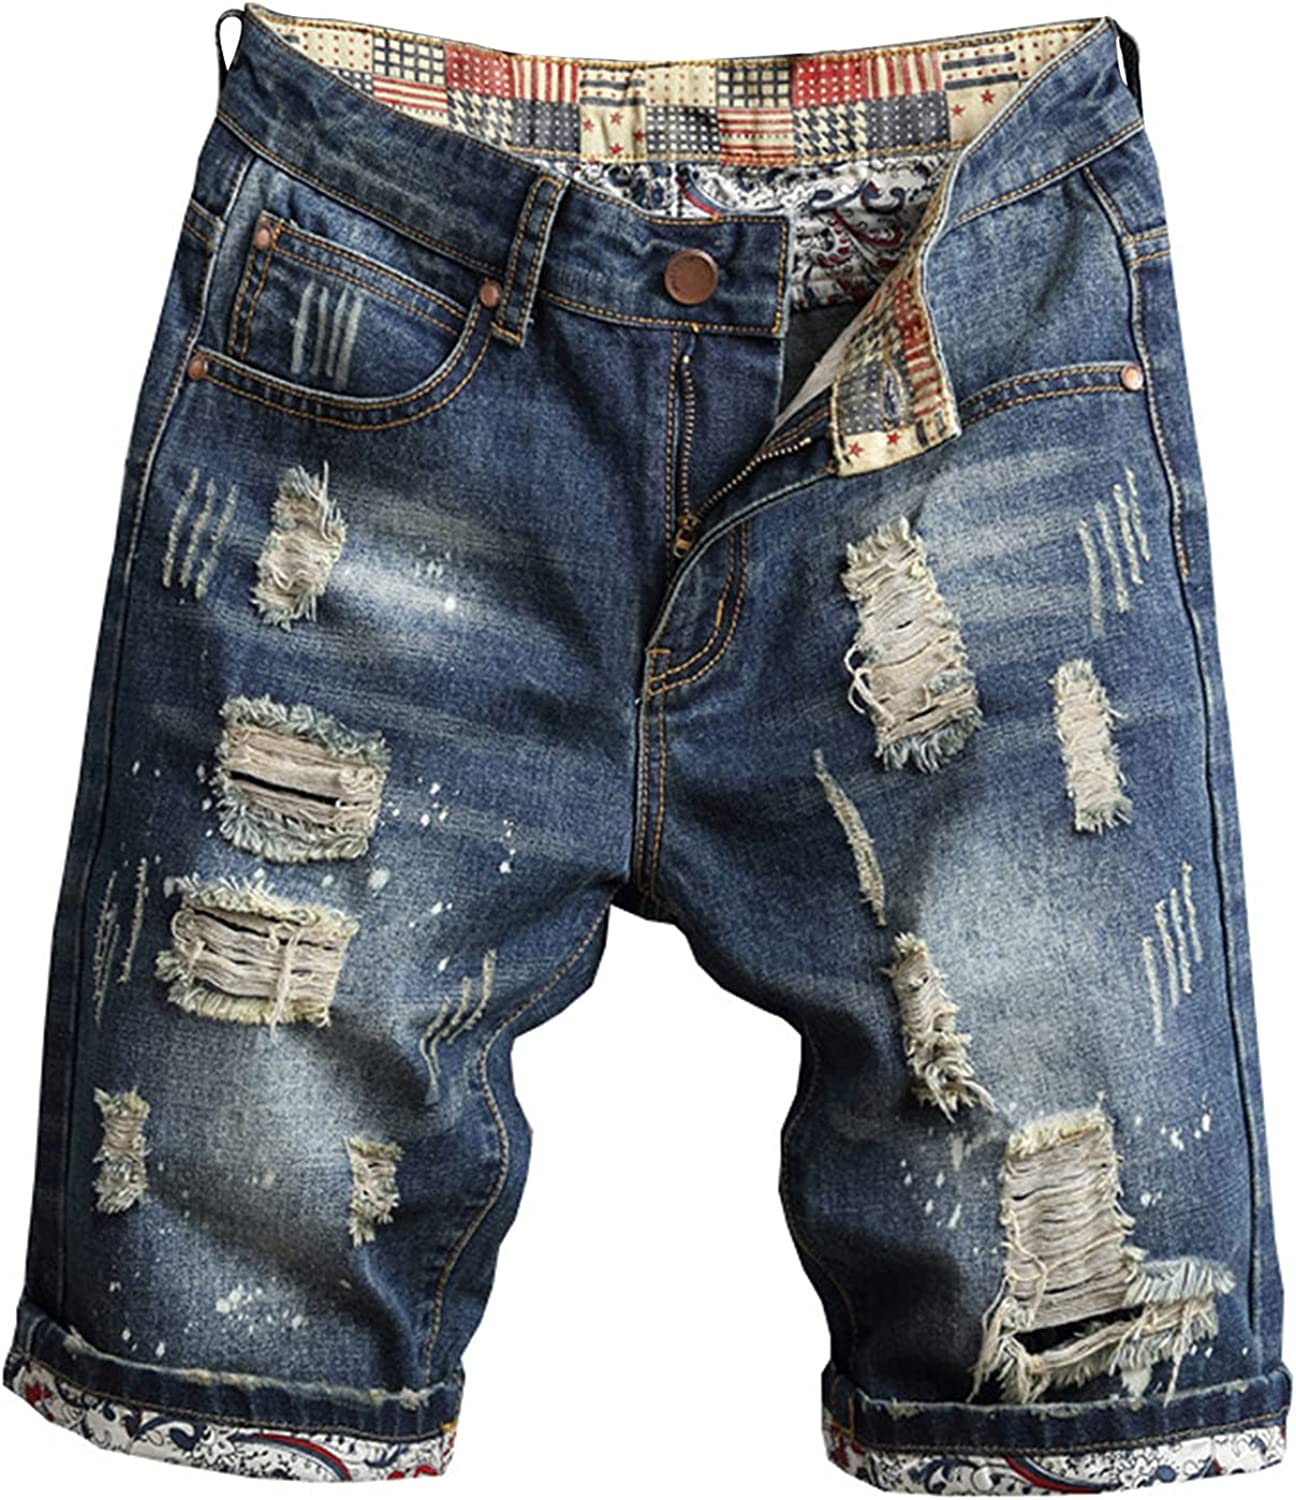 Men's Ripped Distressed Shorts Straight Fit Casual Holes Denim Short Retro Fashion Loose Mid Waist Jeans Short